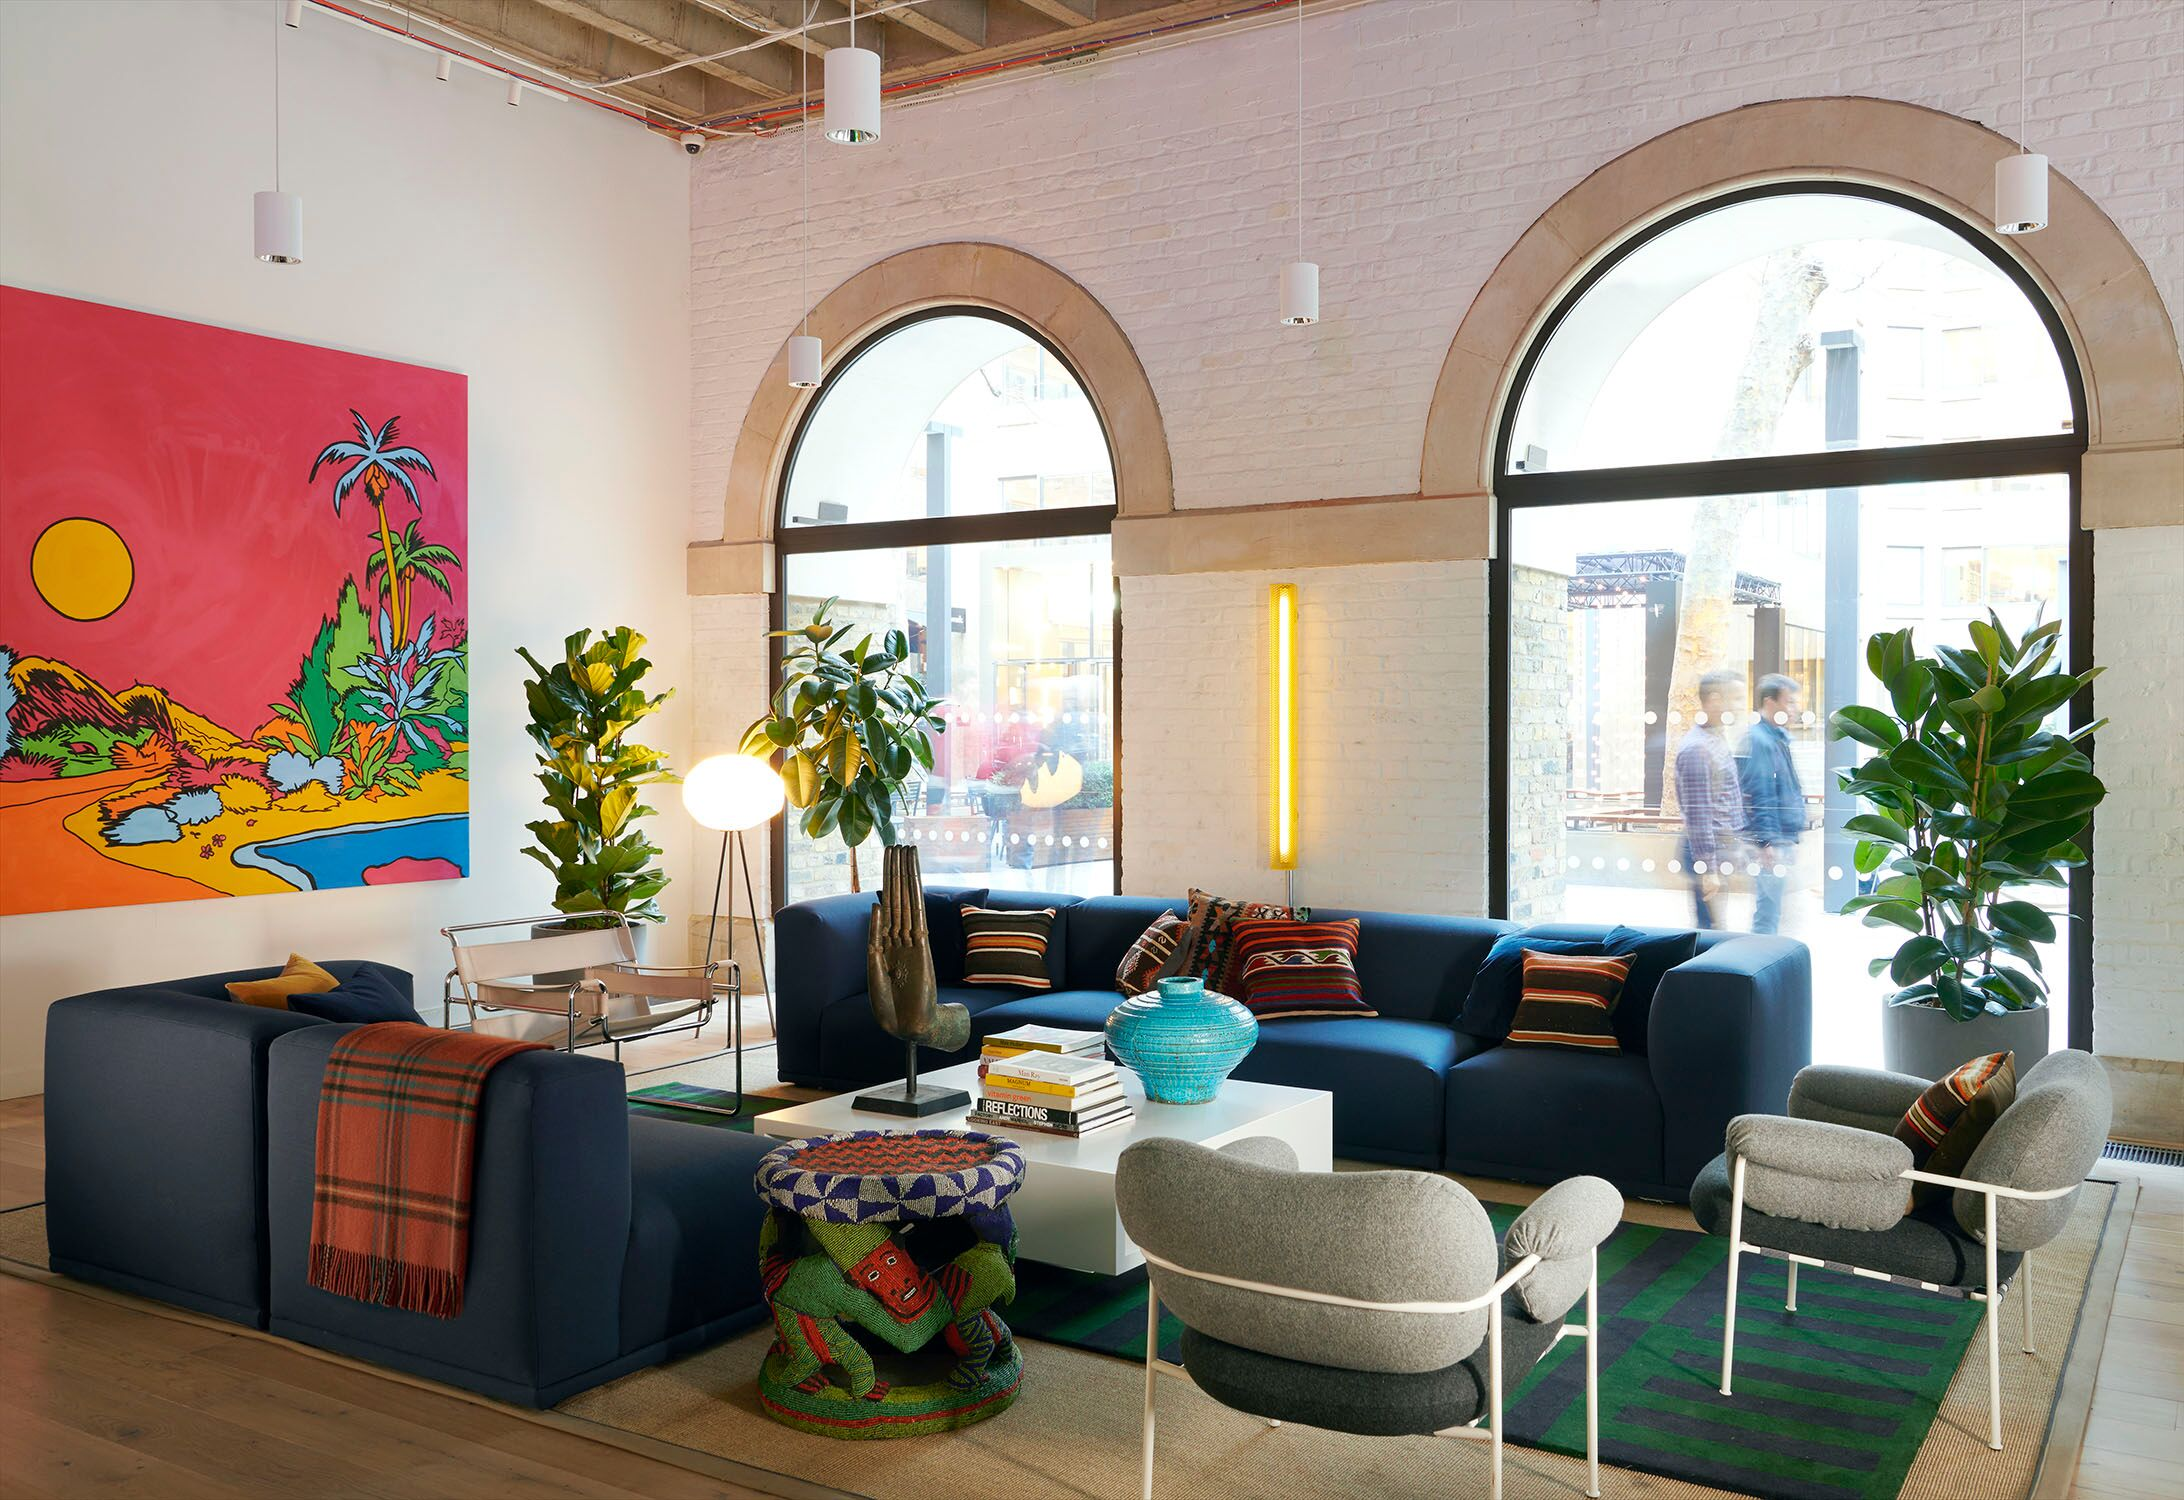 Clients want more deliverables on shorter timelines. Designers must readjust their work styles to compensate. Image credit: WeWork